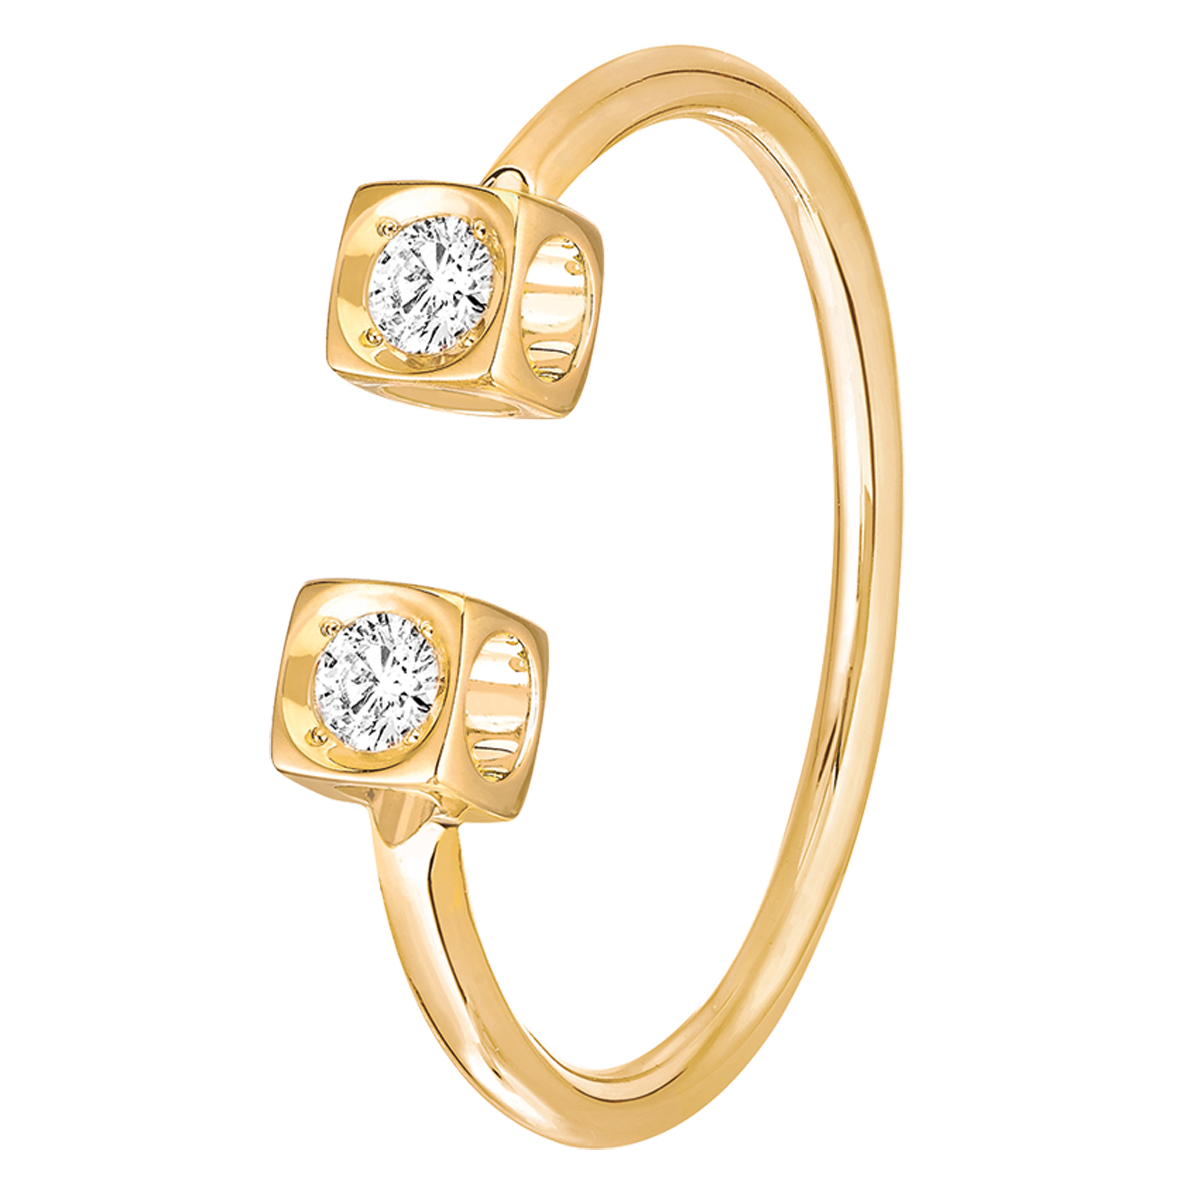 Bague Le Cube Diamant or jaune et diamants